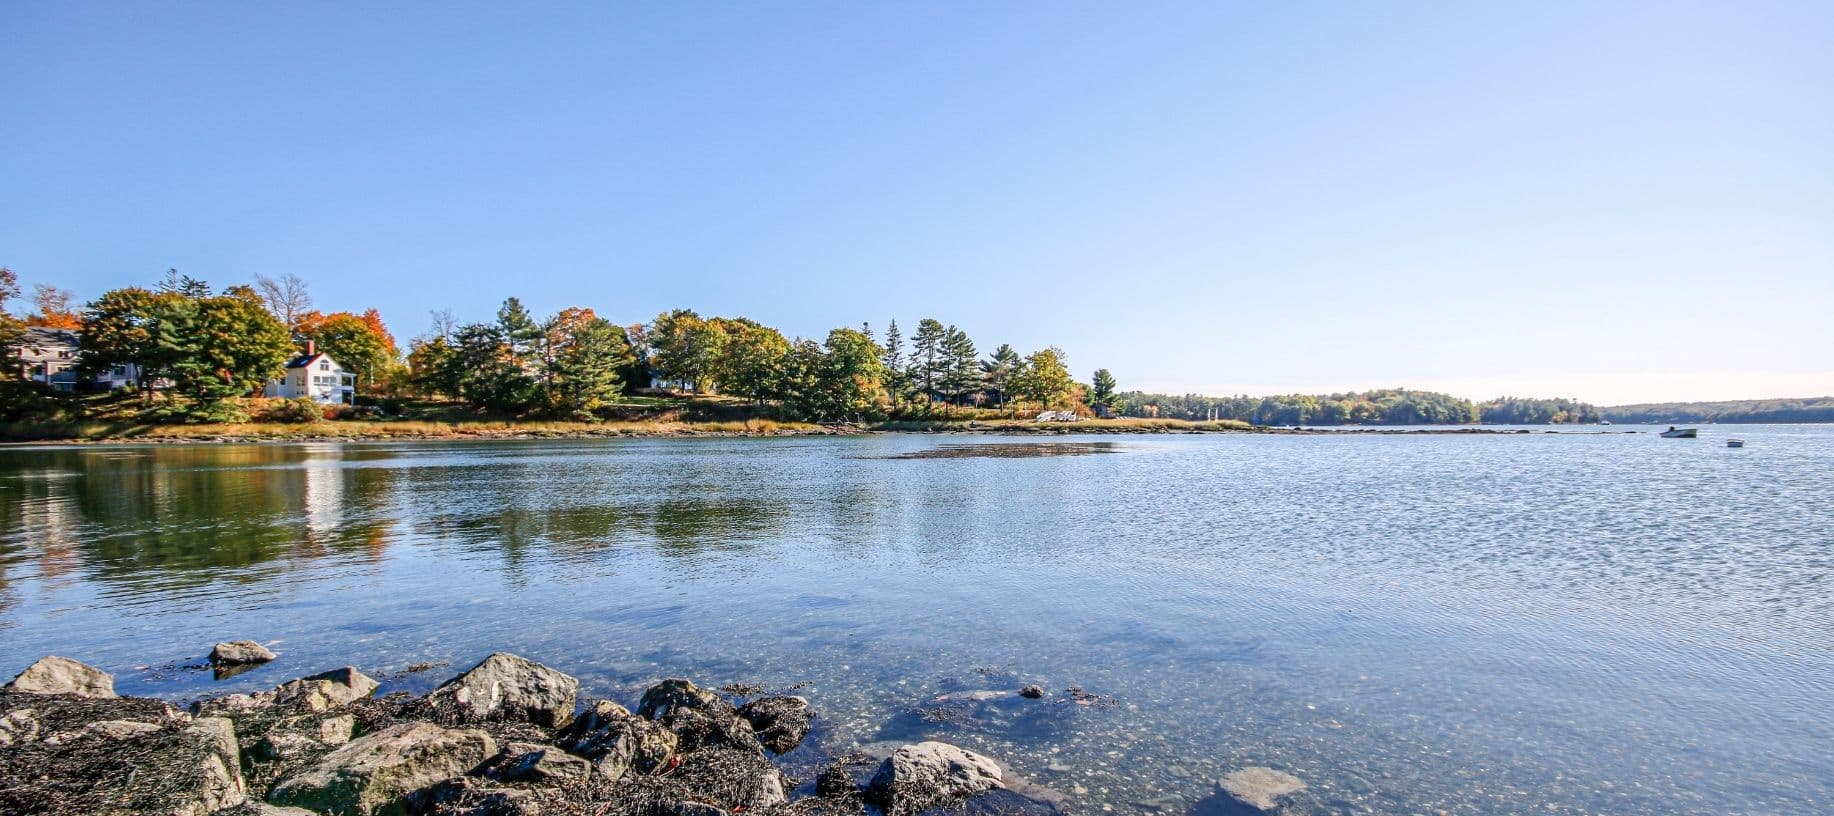 Damarascotta River in the fall with tree and rocklined shores